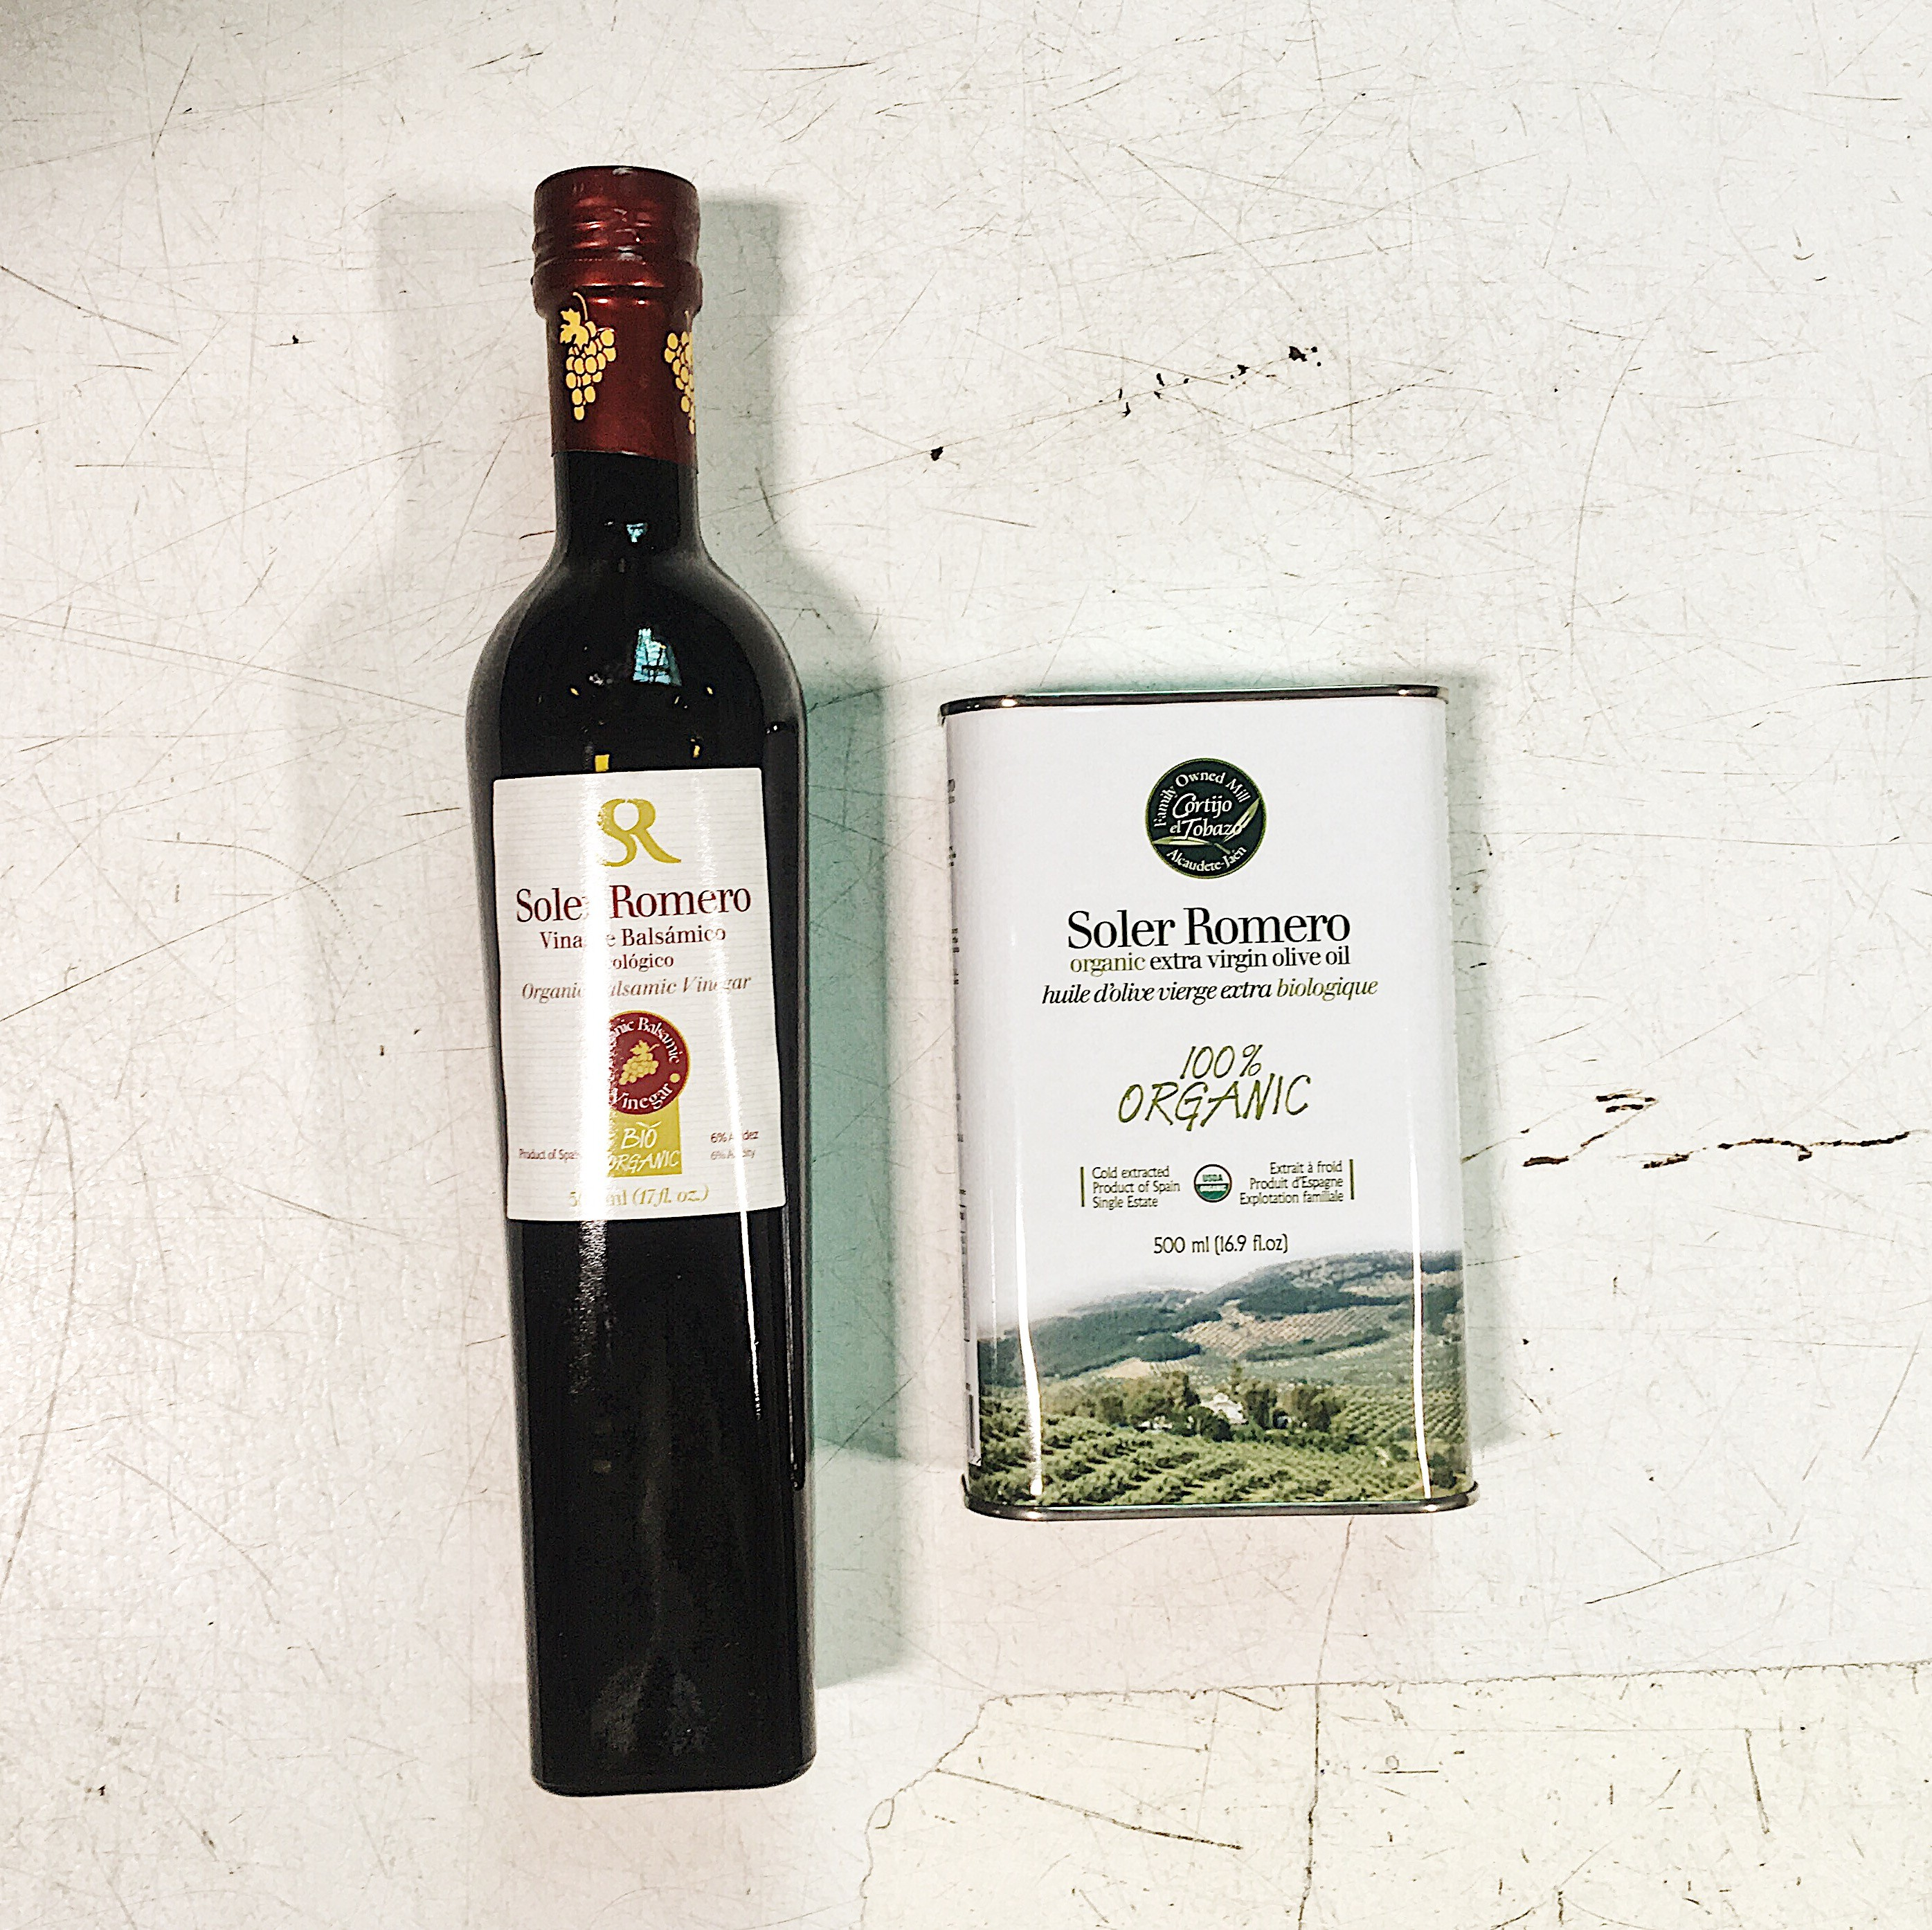 Olive Oil and Balsamic Vinegar from Soler Romero